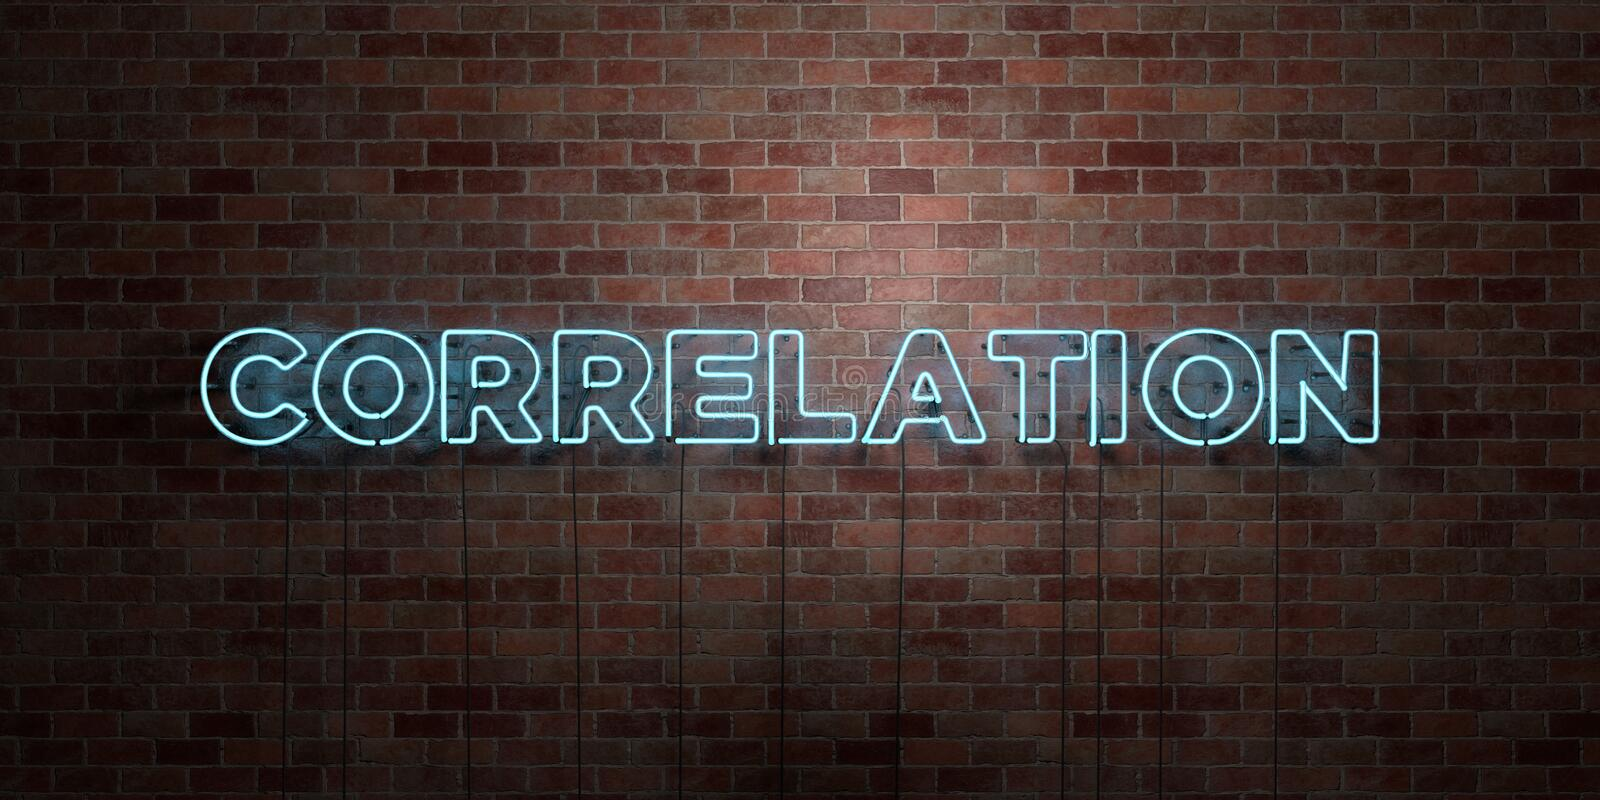 CORRELATION - fluorescent Neon tube Sign on brickwork - Front view - 3D rendered royalty free stock picture vector illustration